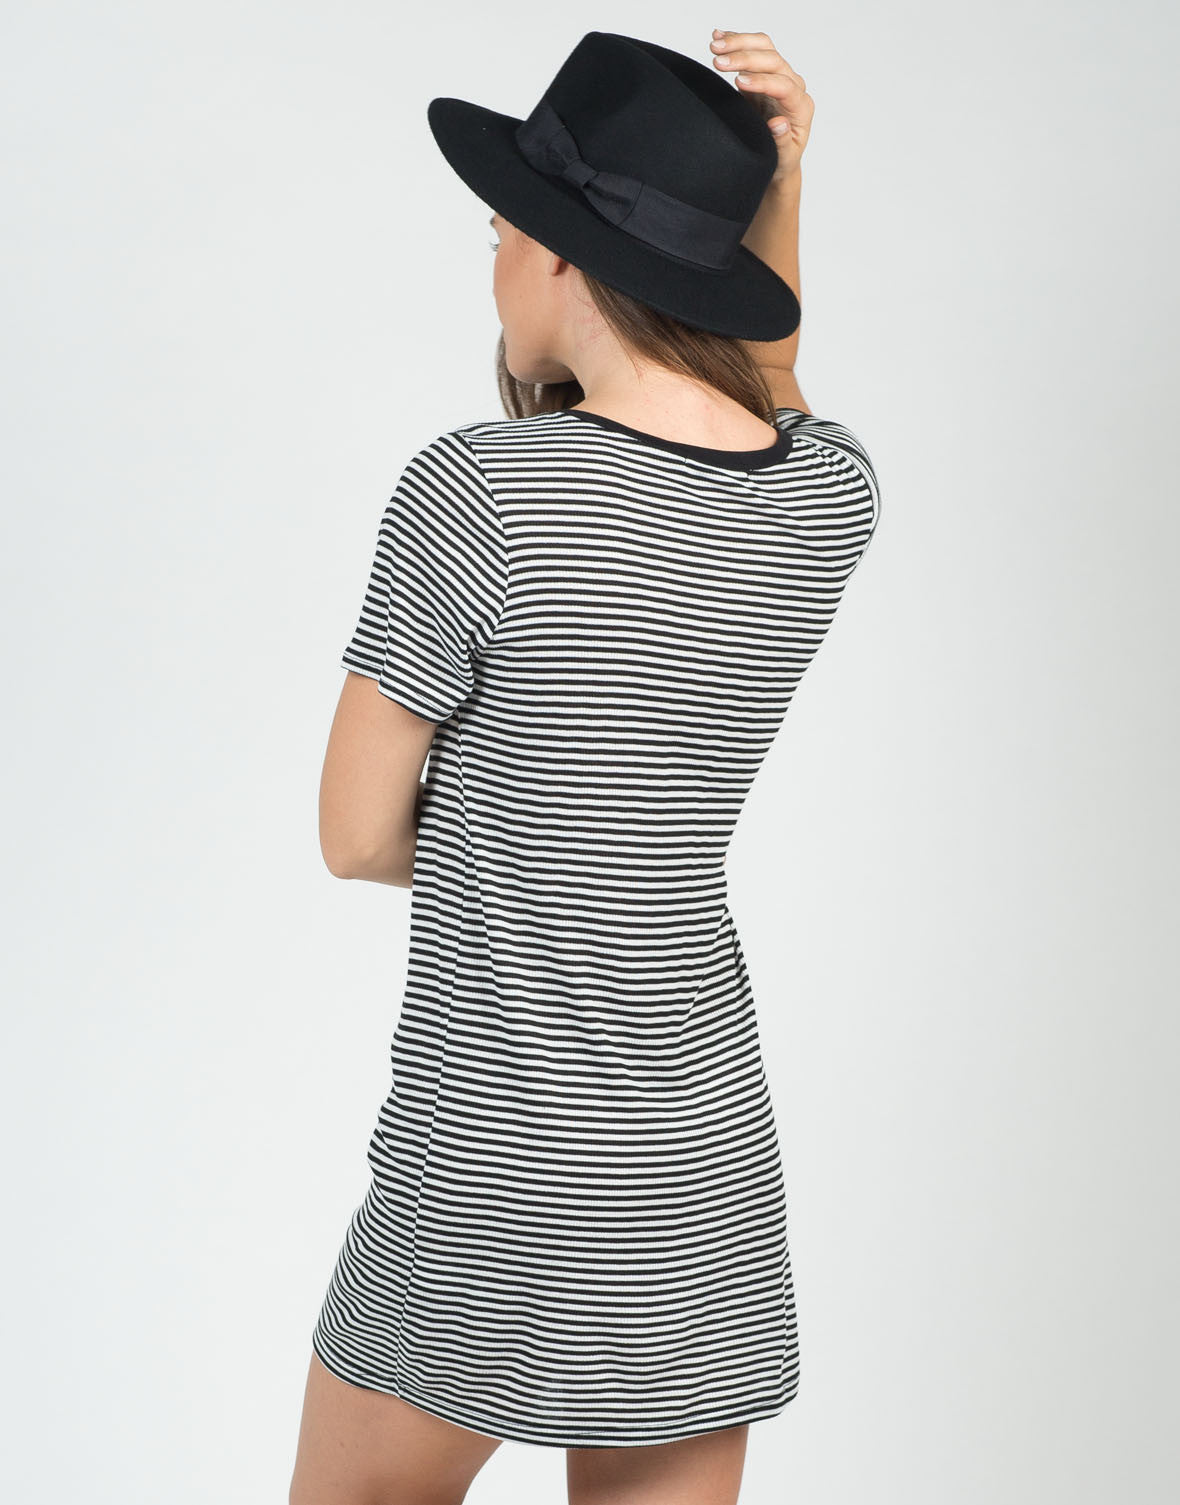 Back View of Pin Striped Shirt Dress